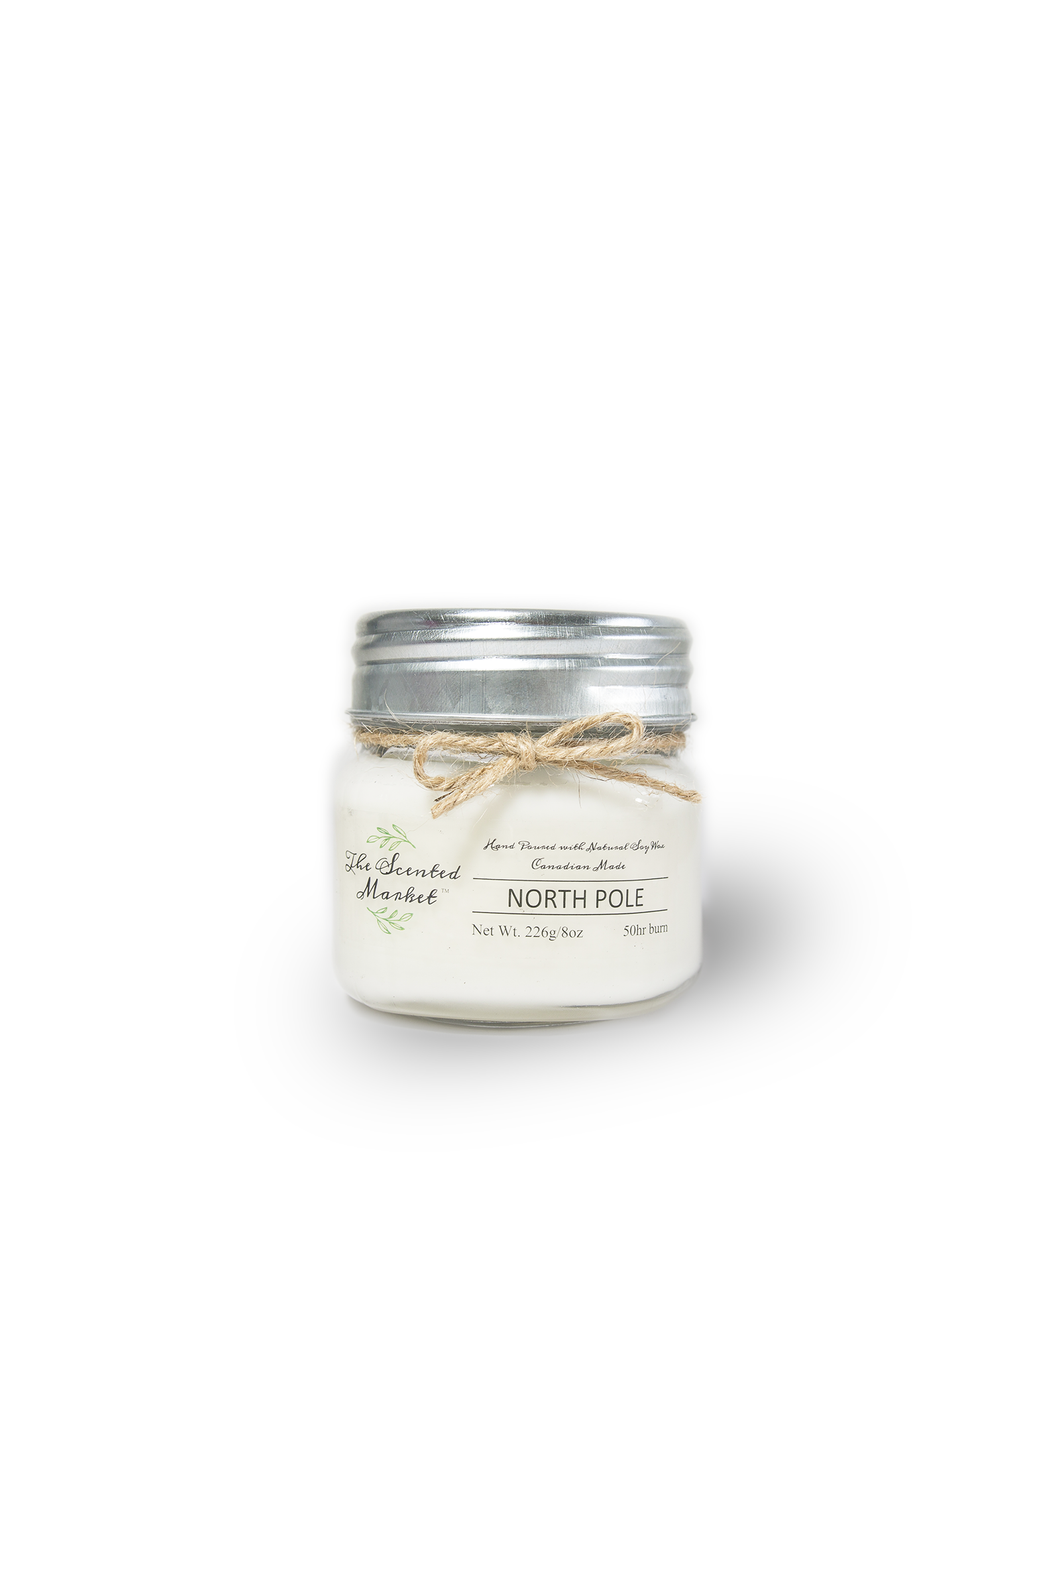 NORTH POLE SOY WAX CANDLE 8oz